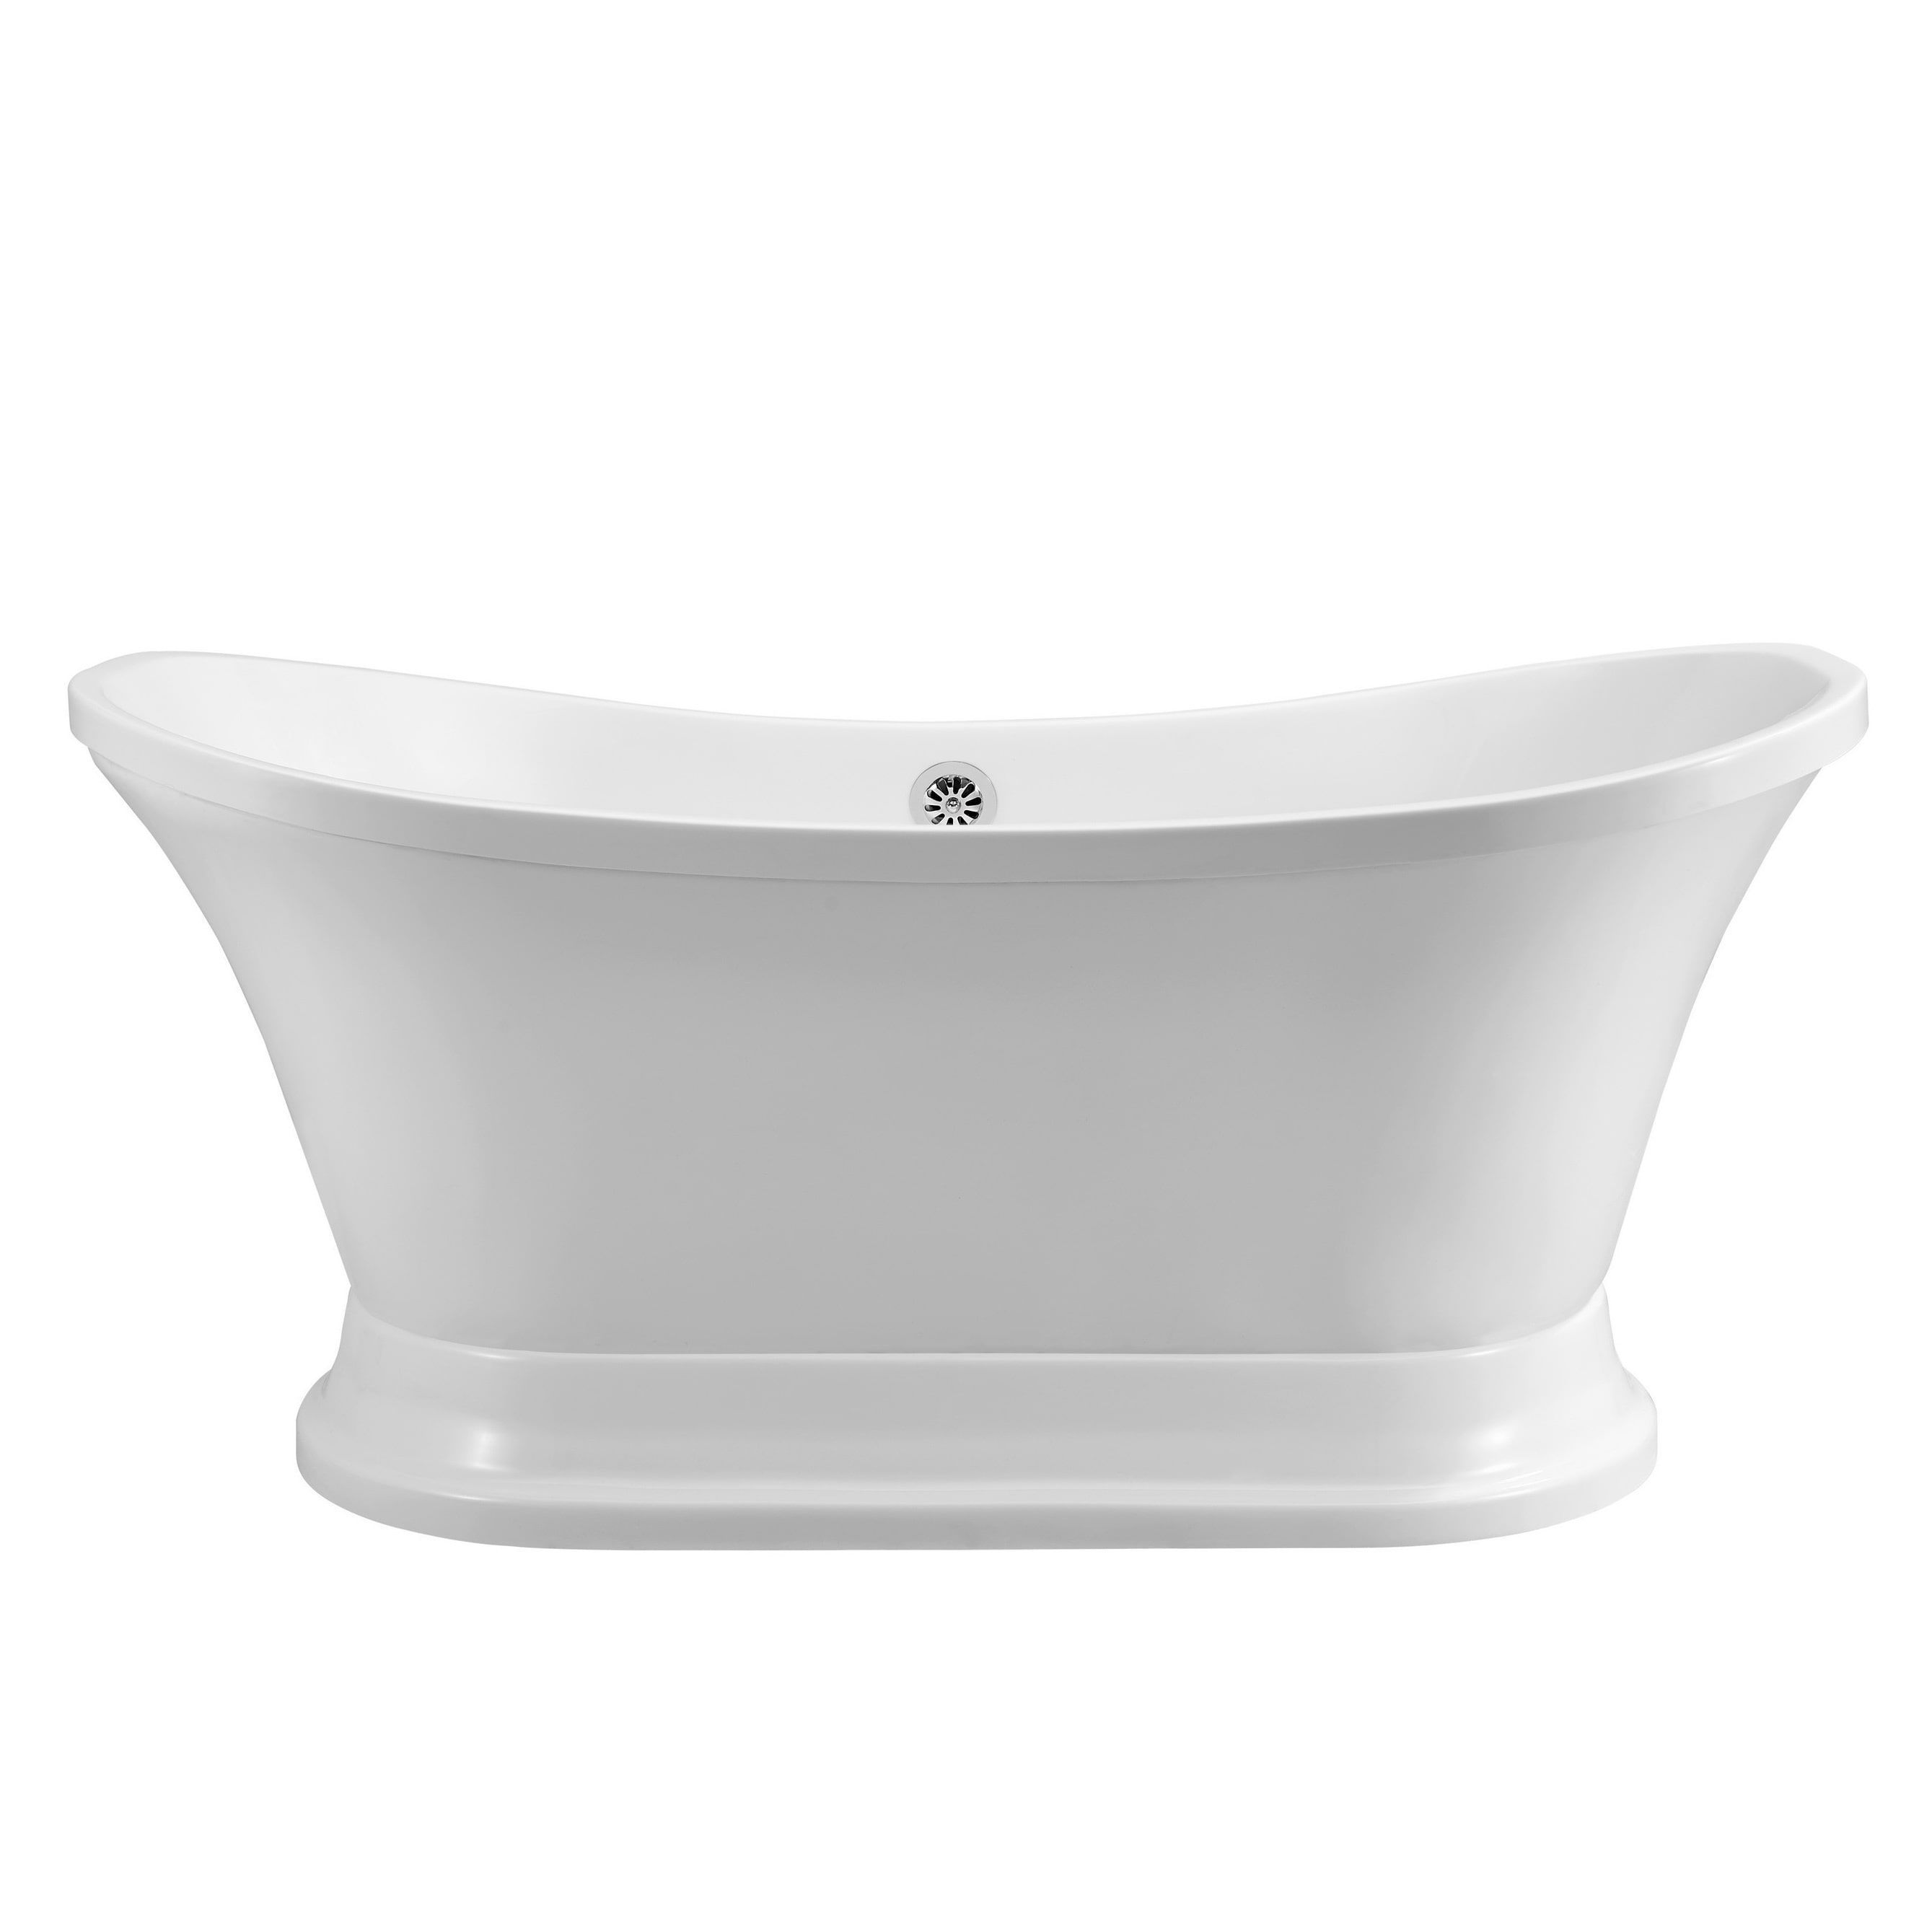 60 Streamline N200ch Soaking Freestanding Tub And Tray With